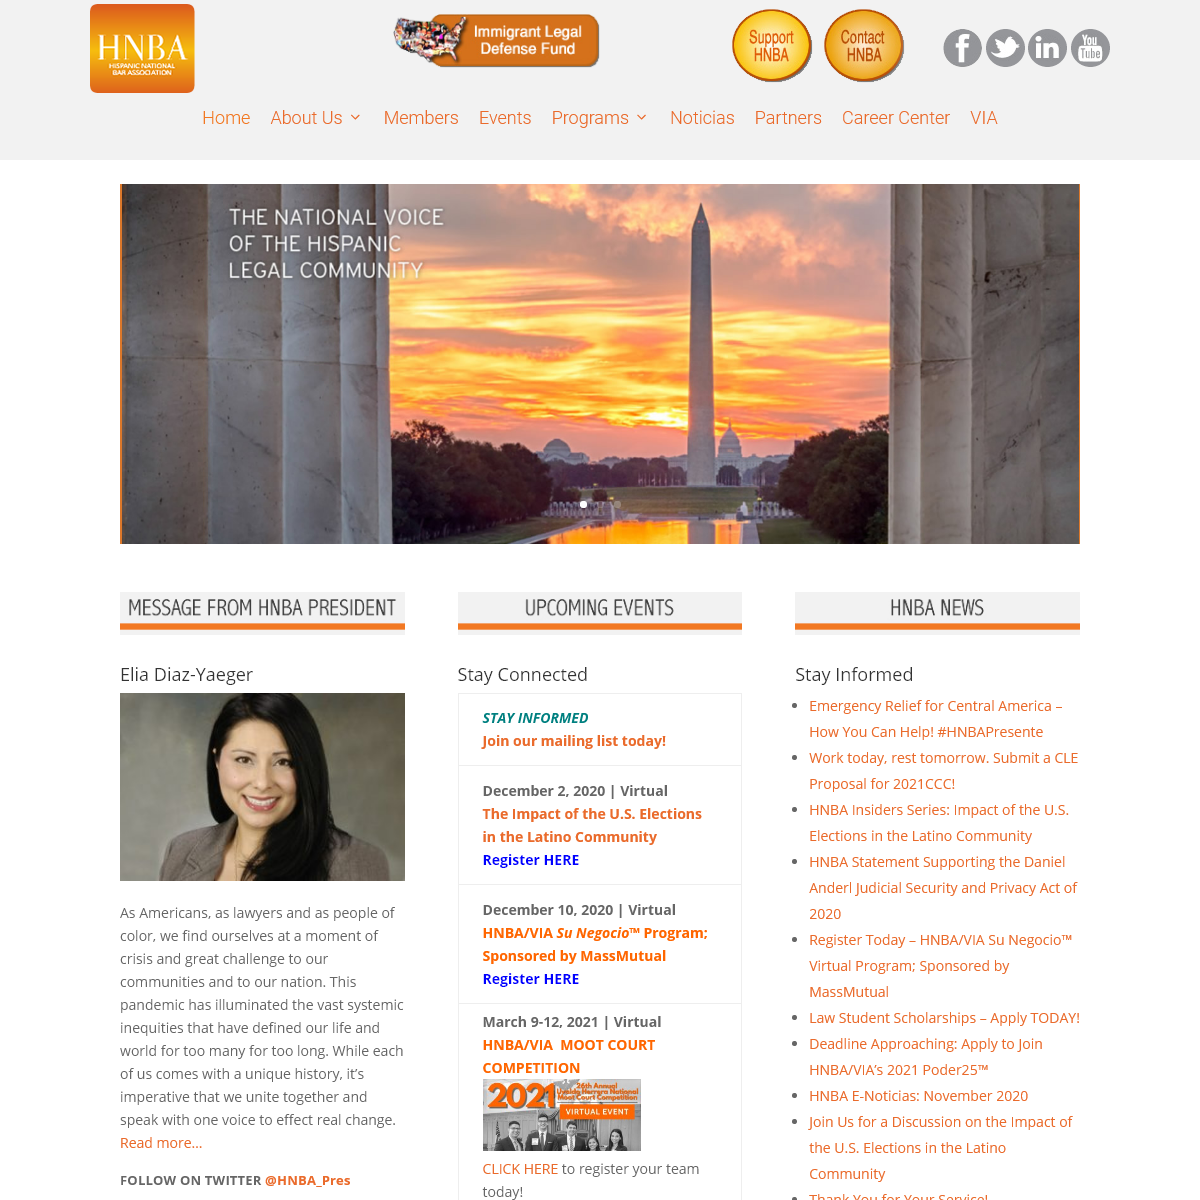 HNBA - The National Voice of the Hispanic Legal Community